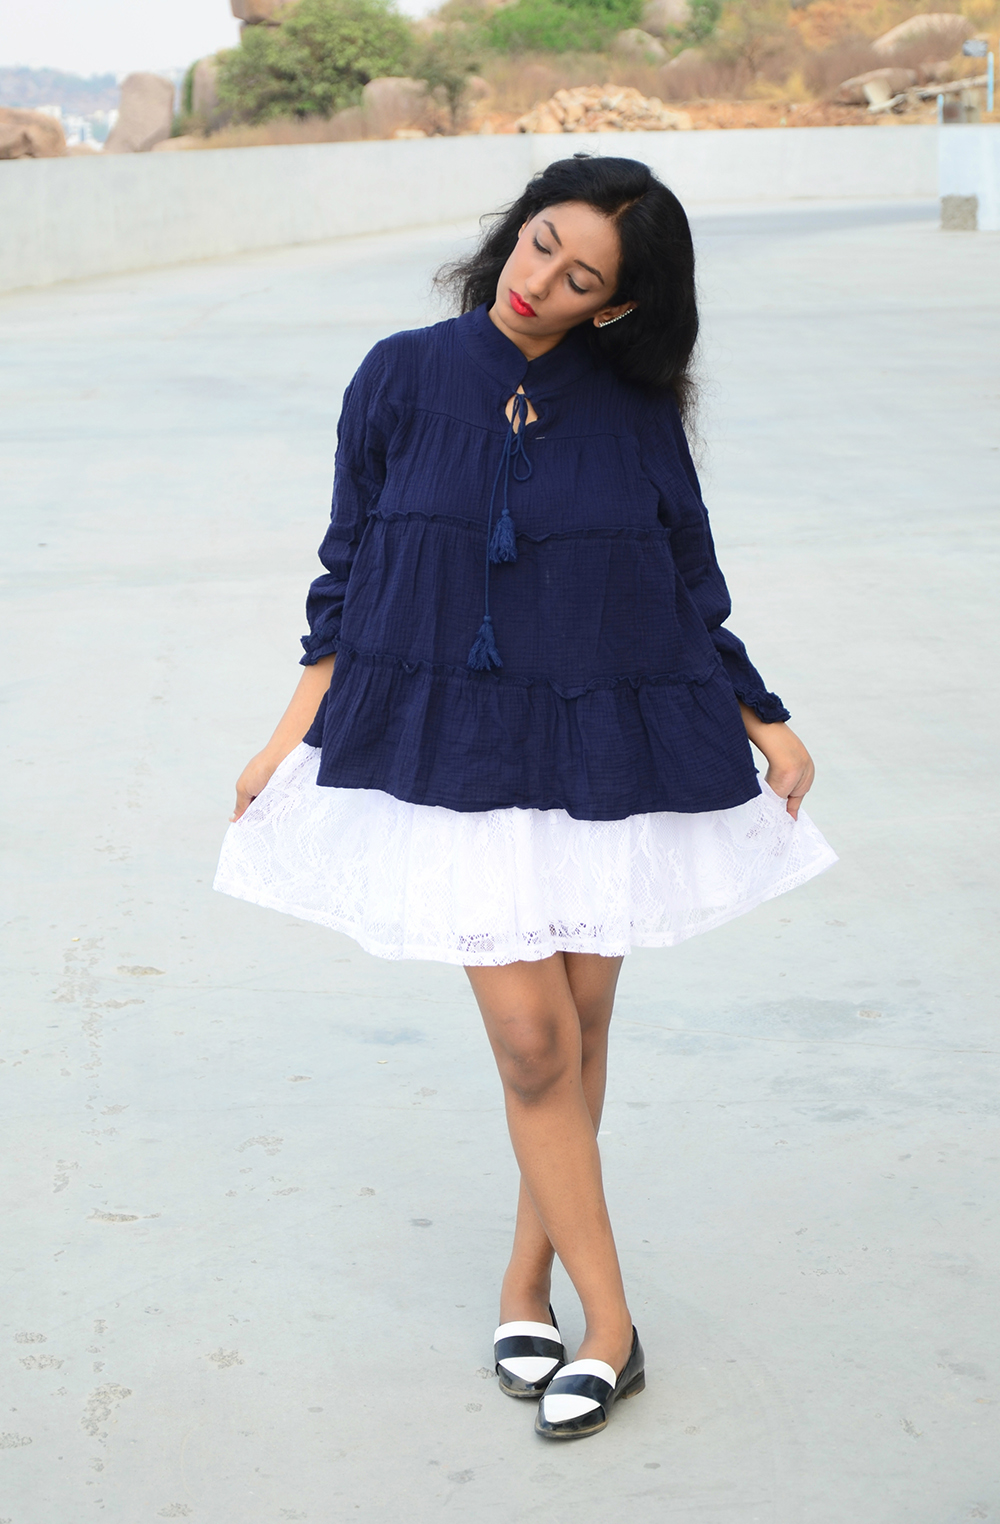 Lookbook ; Ruffle Top ; Lace; Blue ; Skirt ; Monochrome ; White ; Outfit ; One Roze Hyderabad ; Flowers ; Roses ; Hyderabad Store Launch ; Love ; Ear Cuff ; Red Lips ; Zaful ; Boohoo ; fashion photography ; dusk ; editorial ; strong ; Dark ; summer fashion ; summer outfit ; spring ; summer 17; boho look ; Naznin ; Naznin Suhaer ; dusky; model ; indian blogger ; hyderabad fashion bloggers ; hyderabad bloggers ; hyderabad fashion blogger ; I Dress for the Applause ;